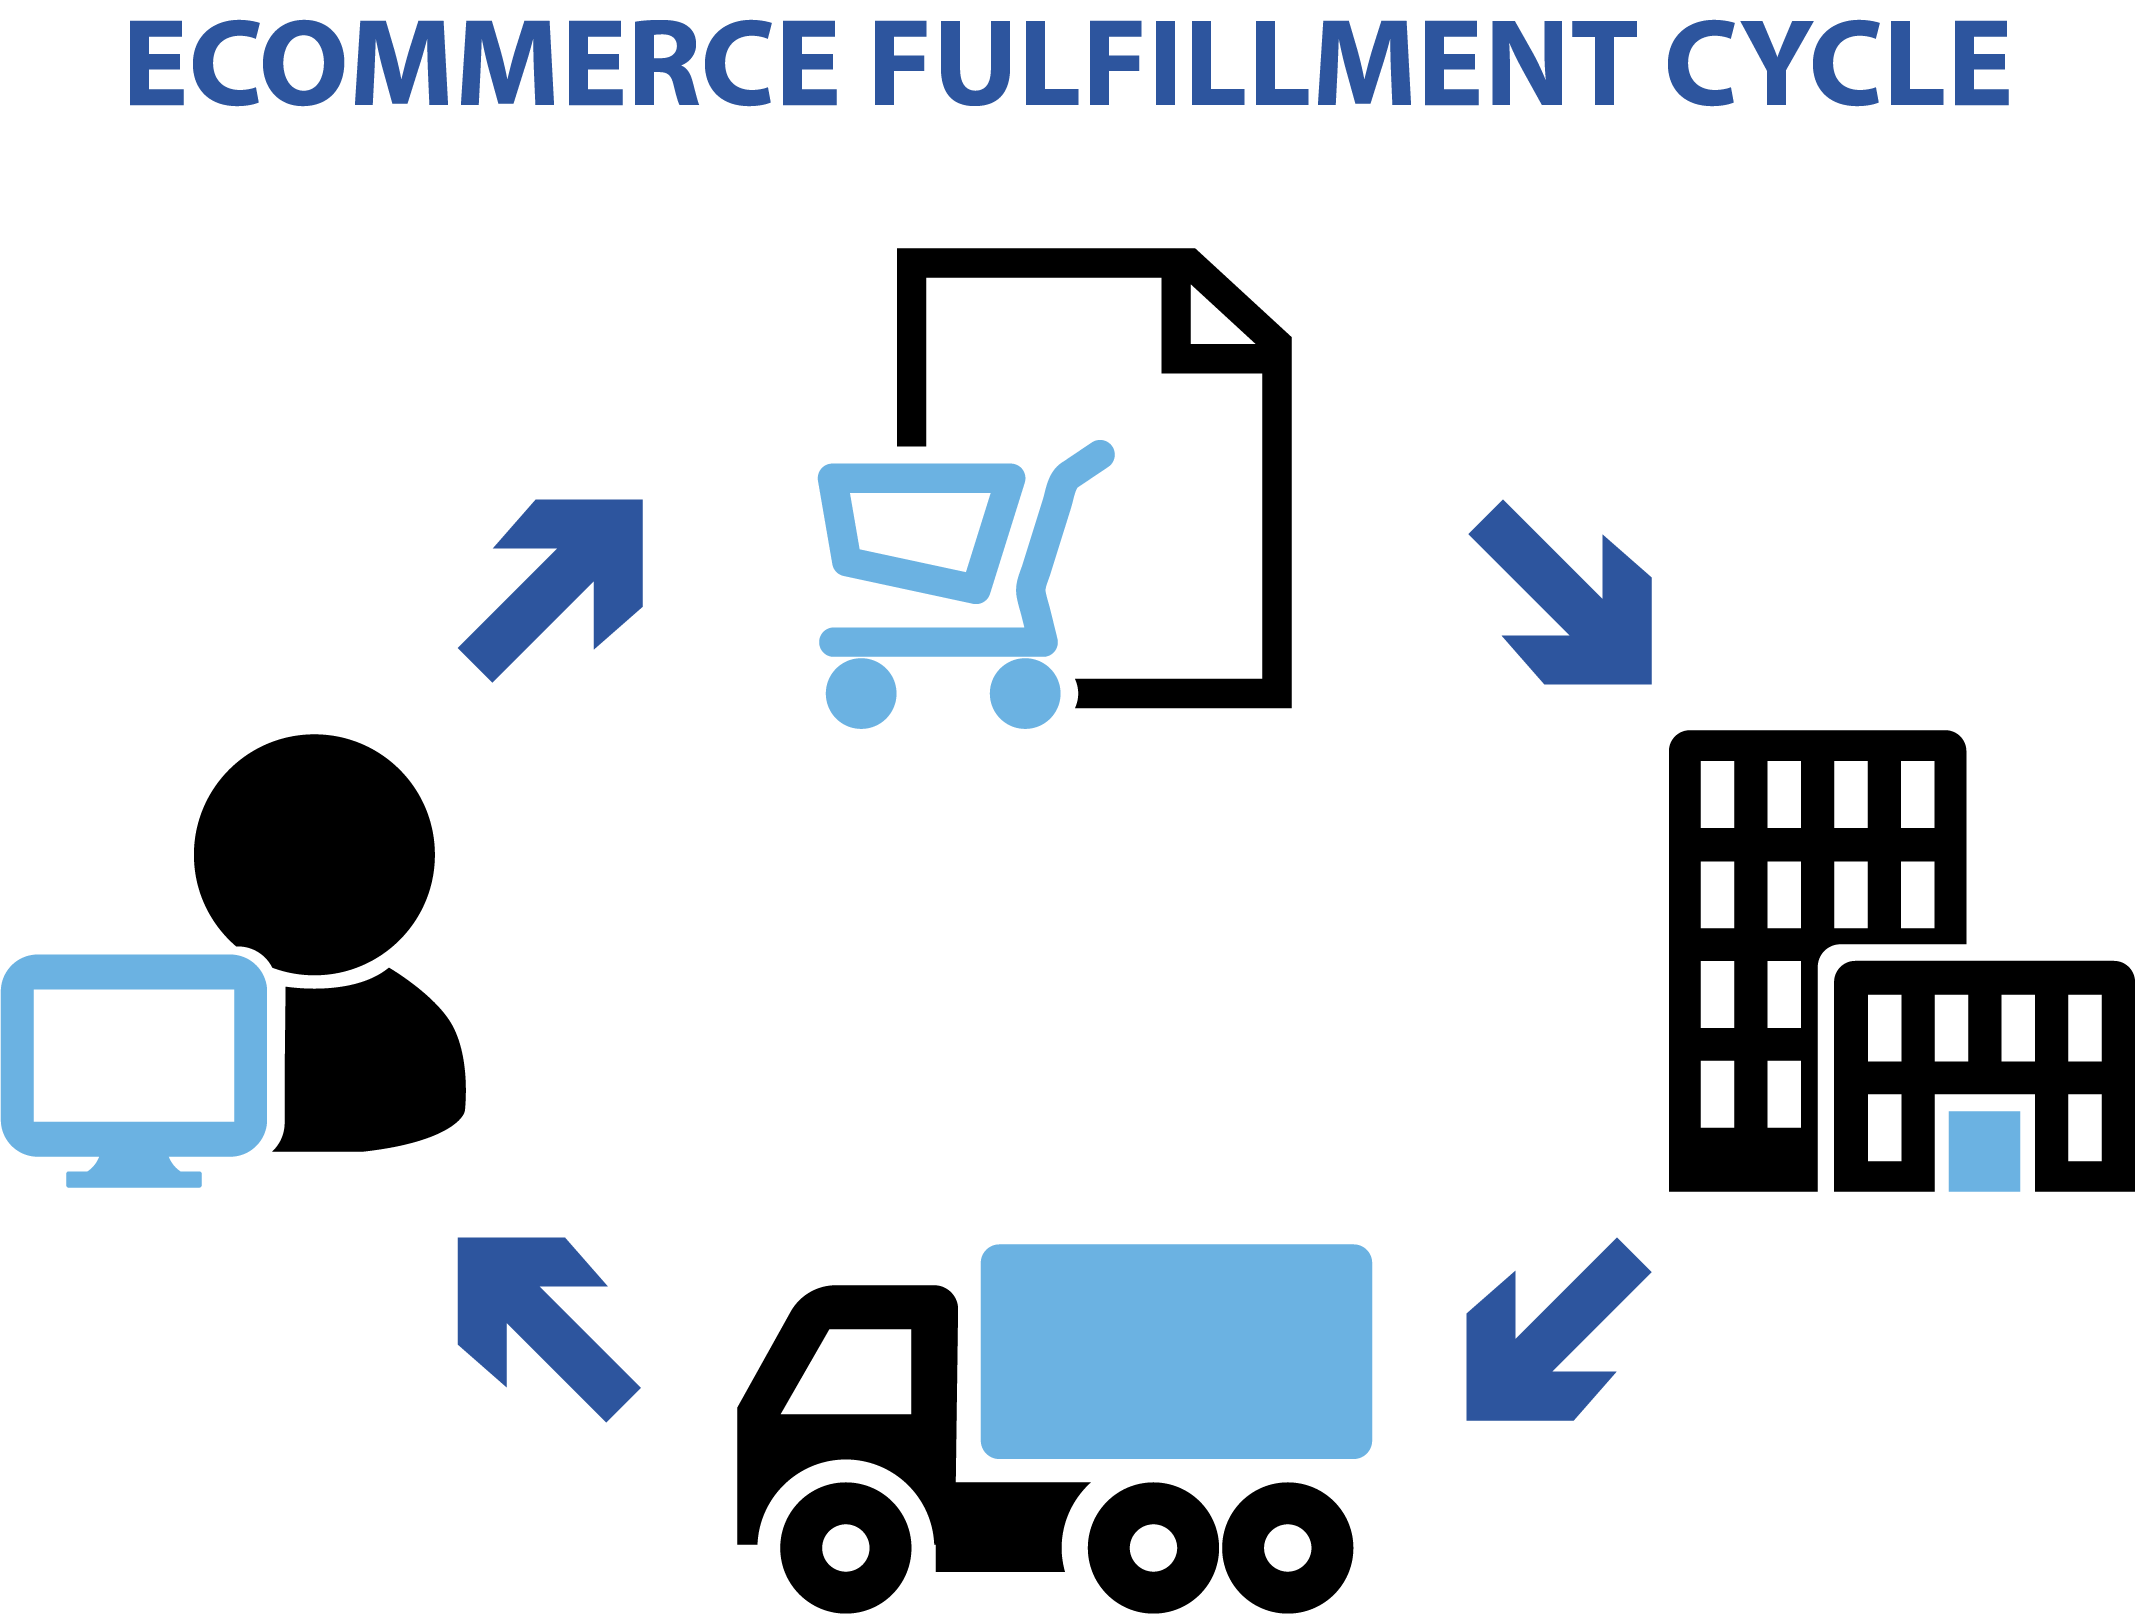 eCommerce Fulfillment Cycle